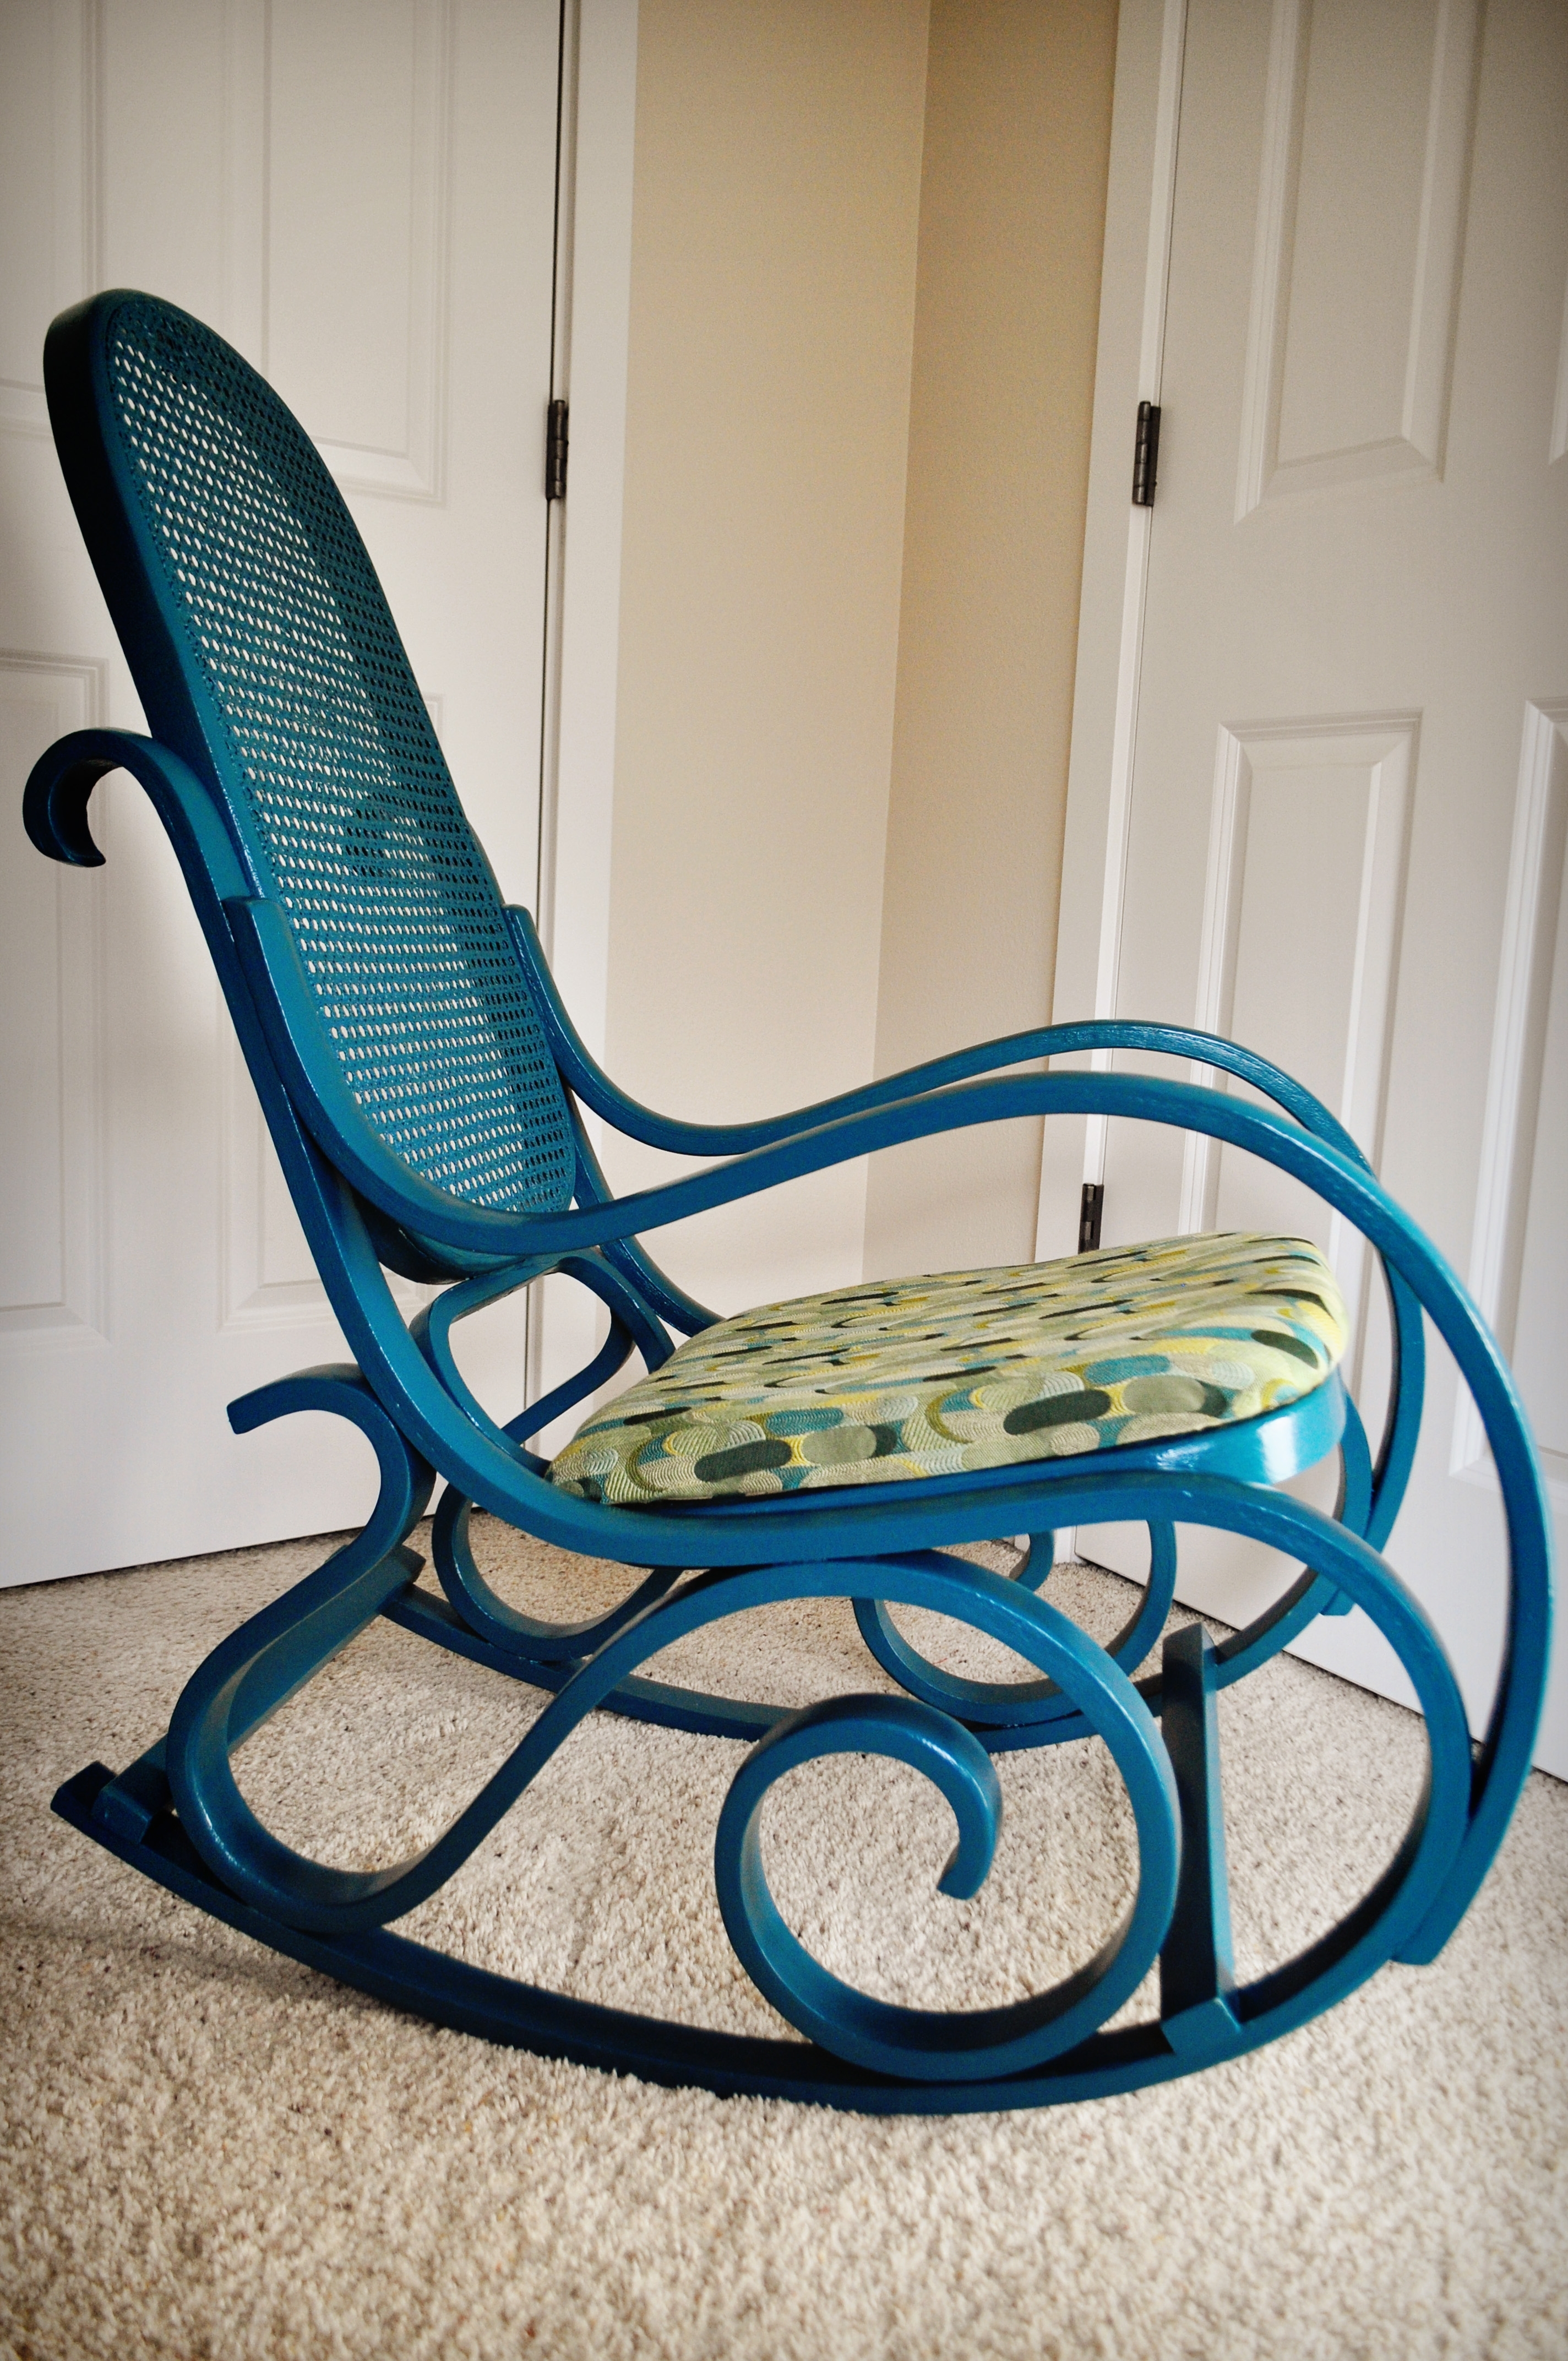 Well Known Vintage Wicker Rocking Chairs Pertaining To Furniture: Antique Wicker Rocking Chair Design (View 18 of 20)